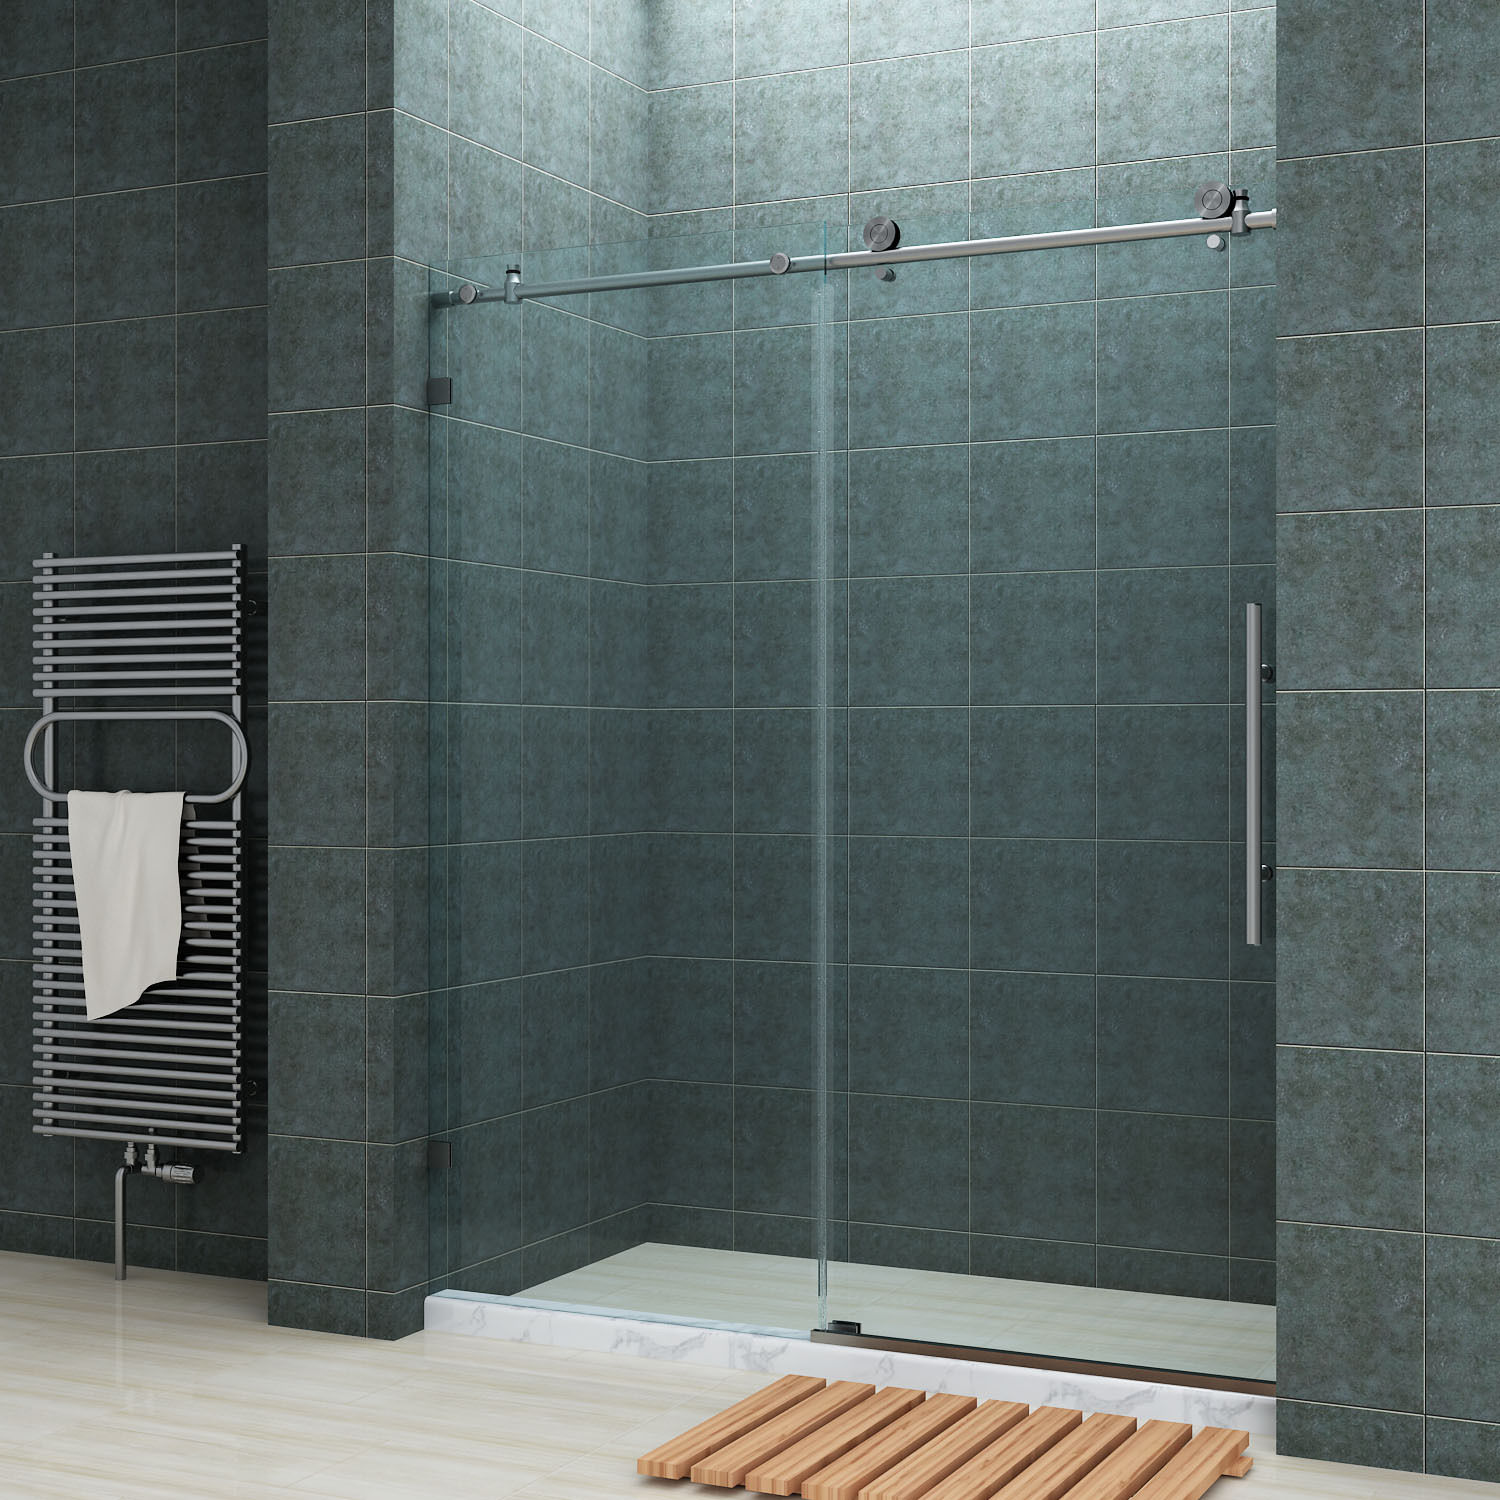 Bathroom Sliding Glass Doors: SUNNY SHOWER Fully Frameless Sliding Shower Doors 60